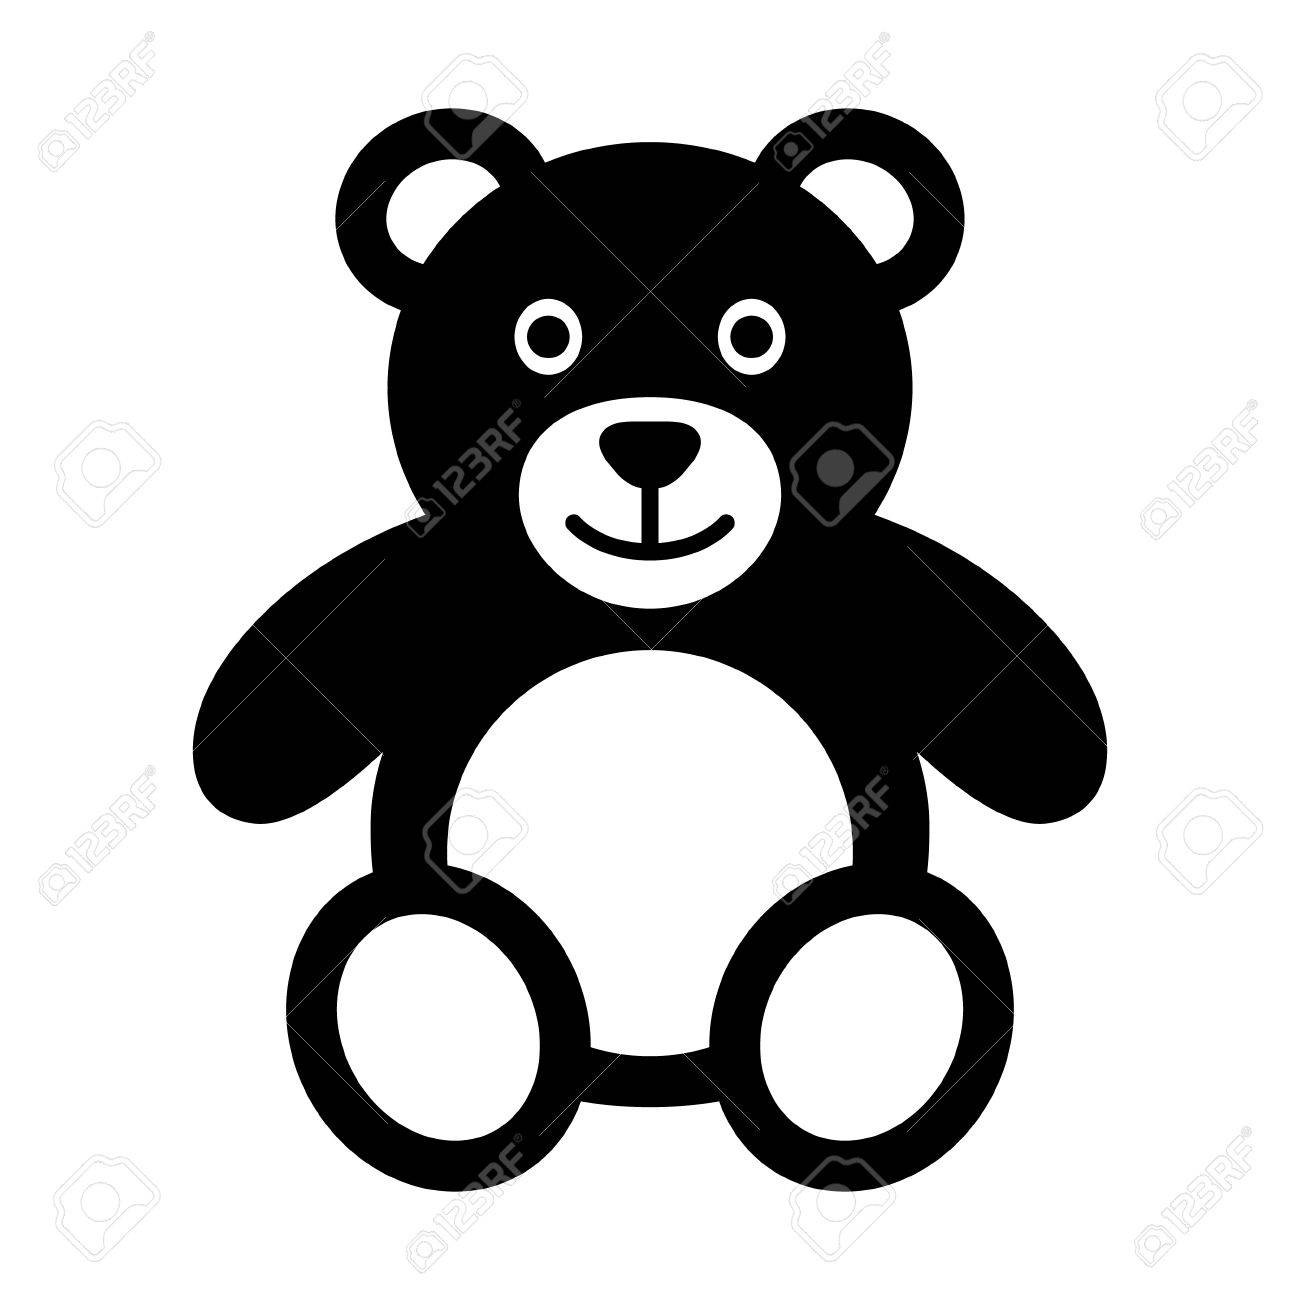 Teddy bear plush toy flat icon for apps and websites - 50016428